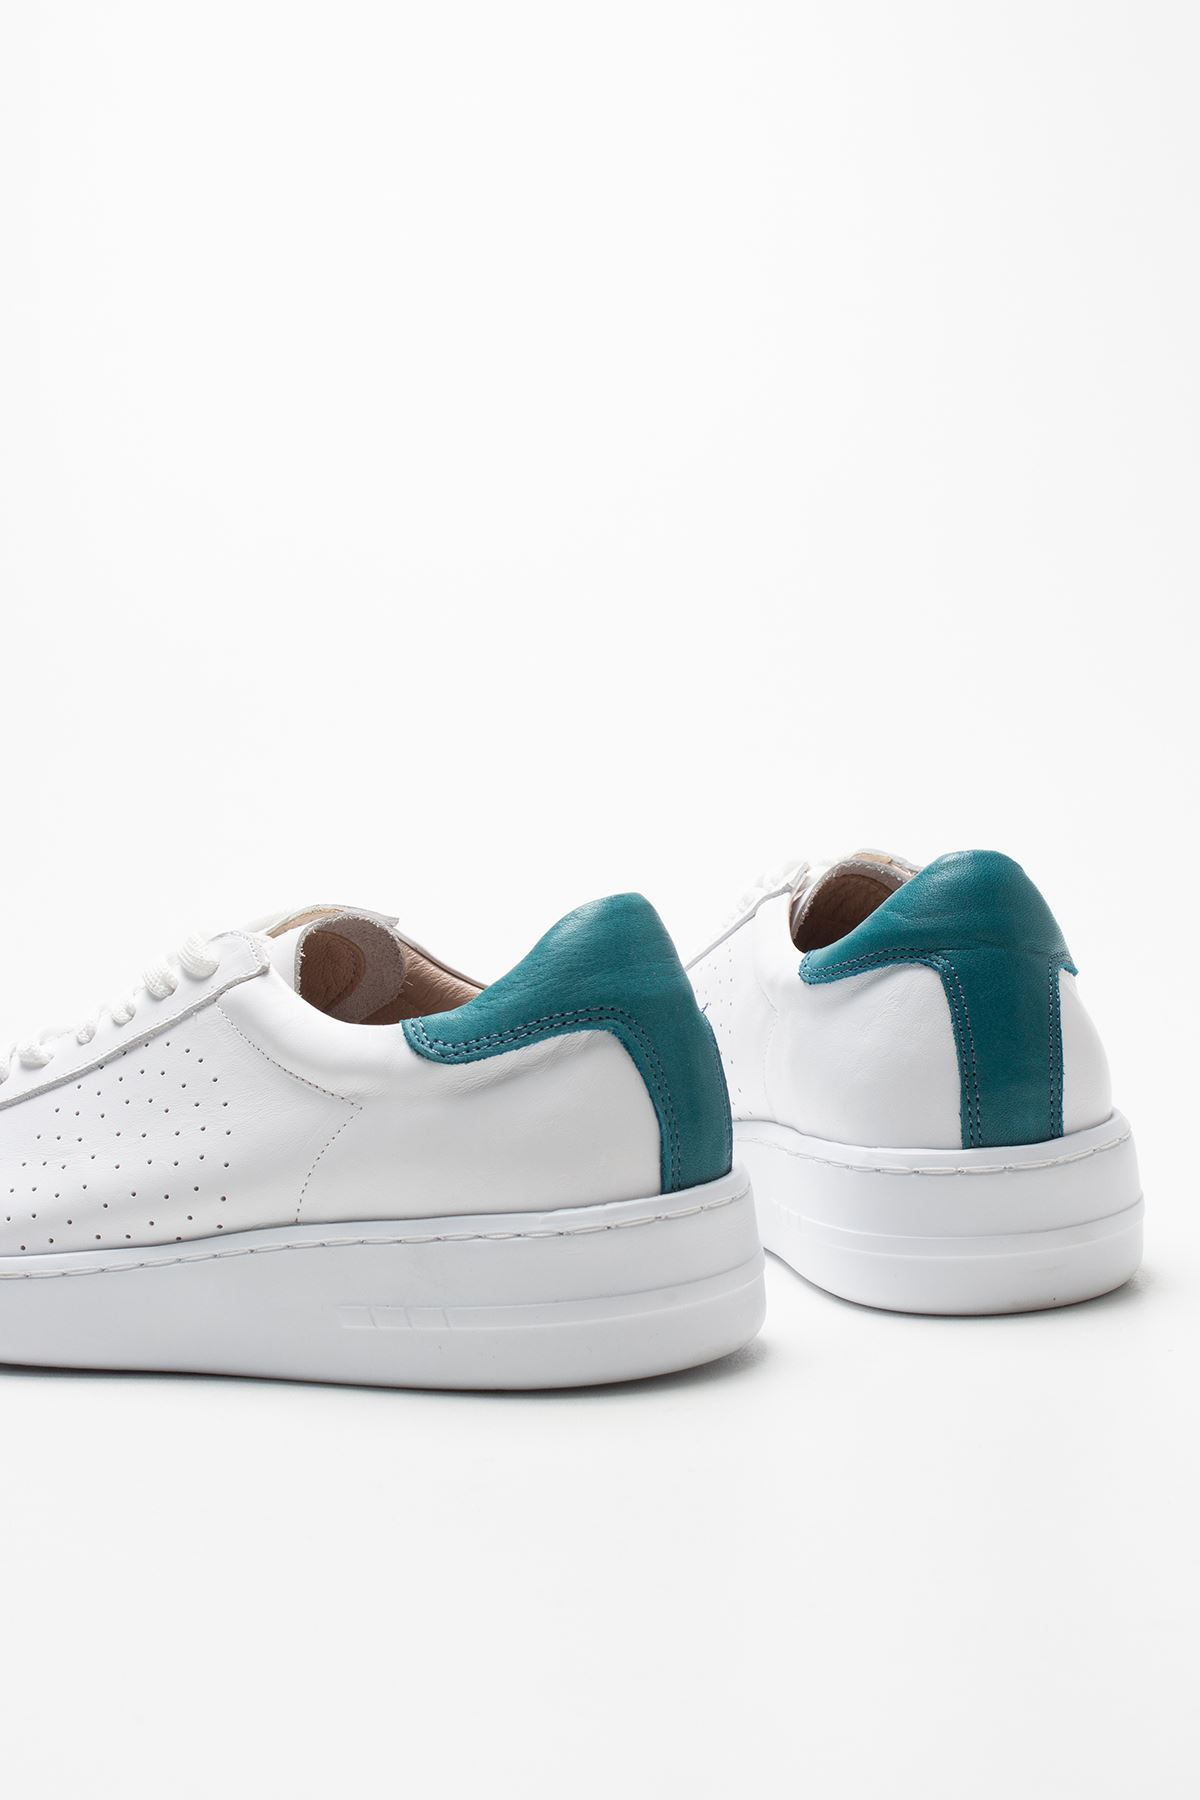 Grawp White Blue Genuine Leather Women Sneakers